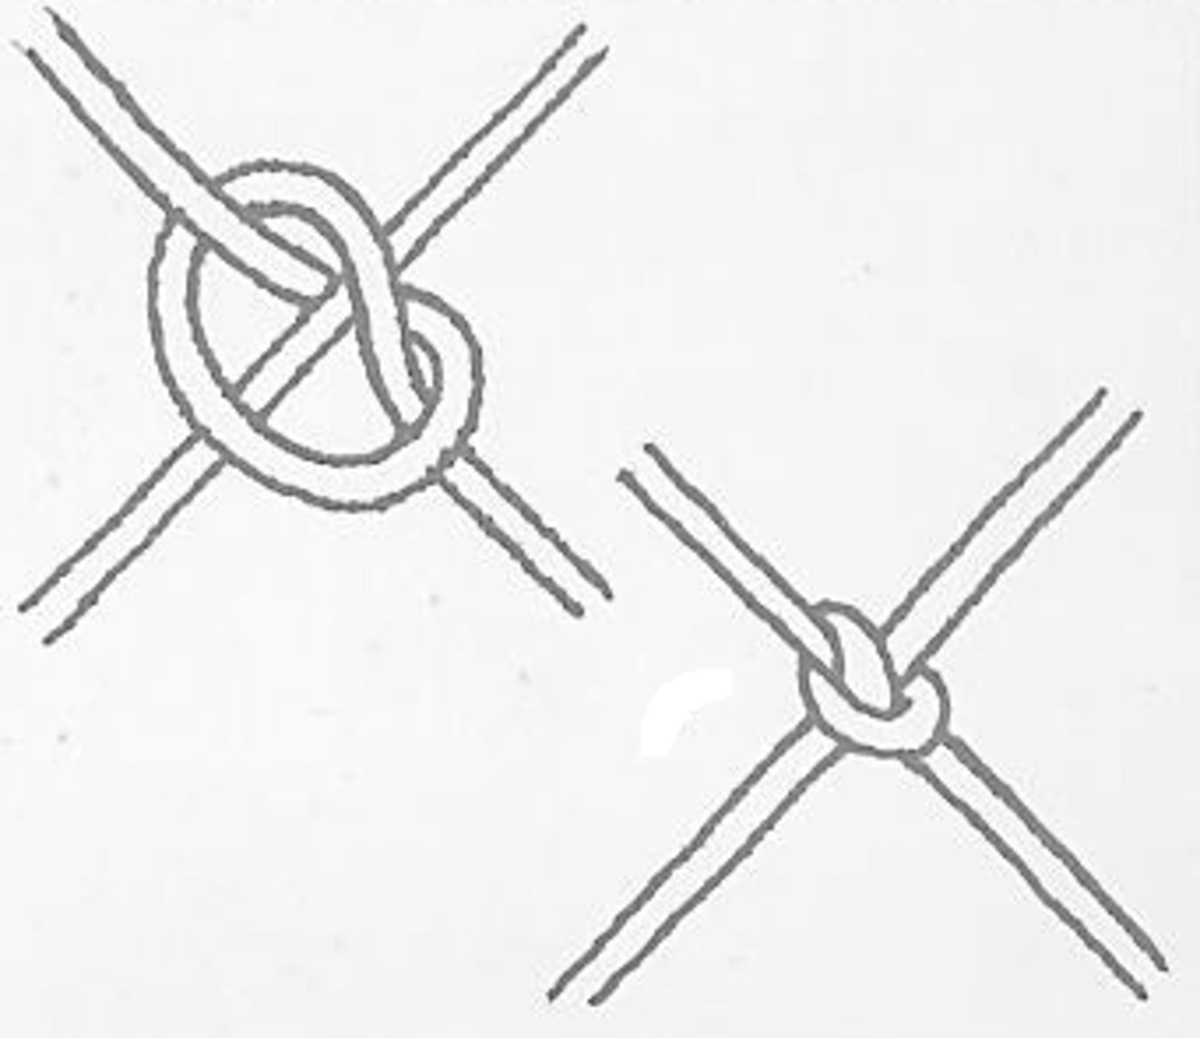 Figure 7 - Marling Knot